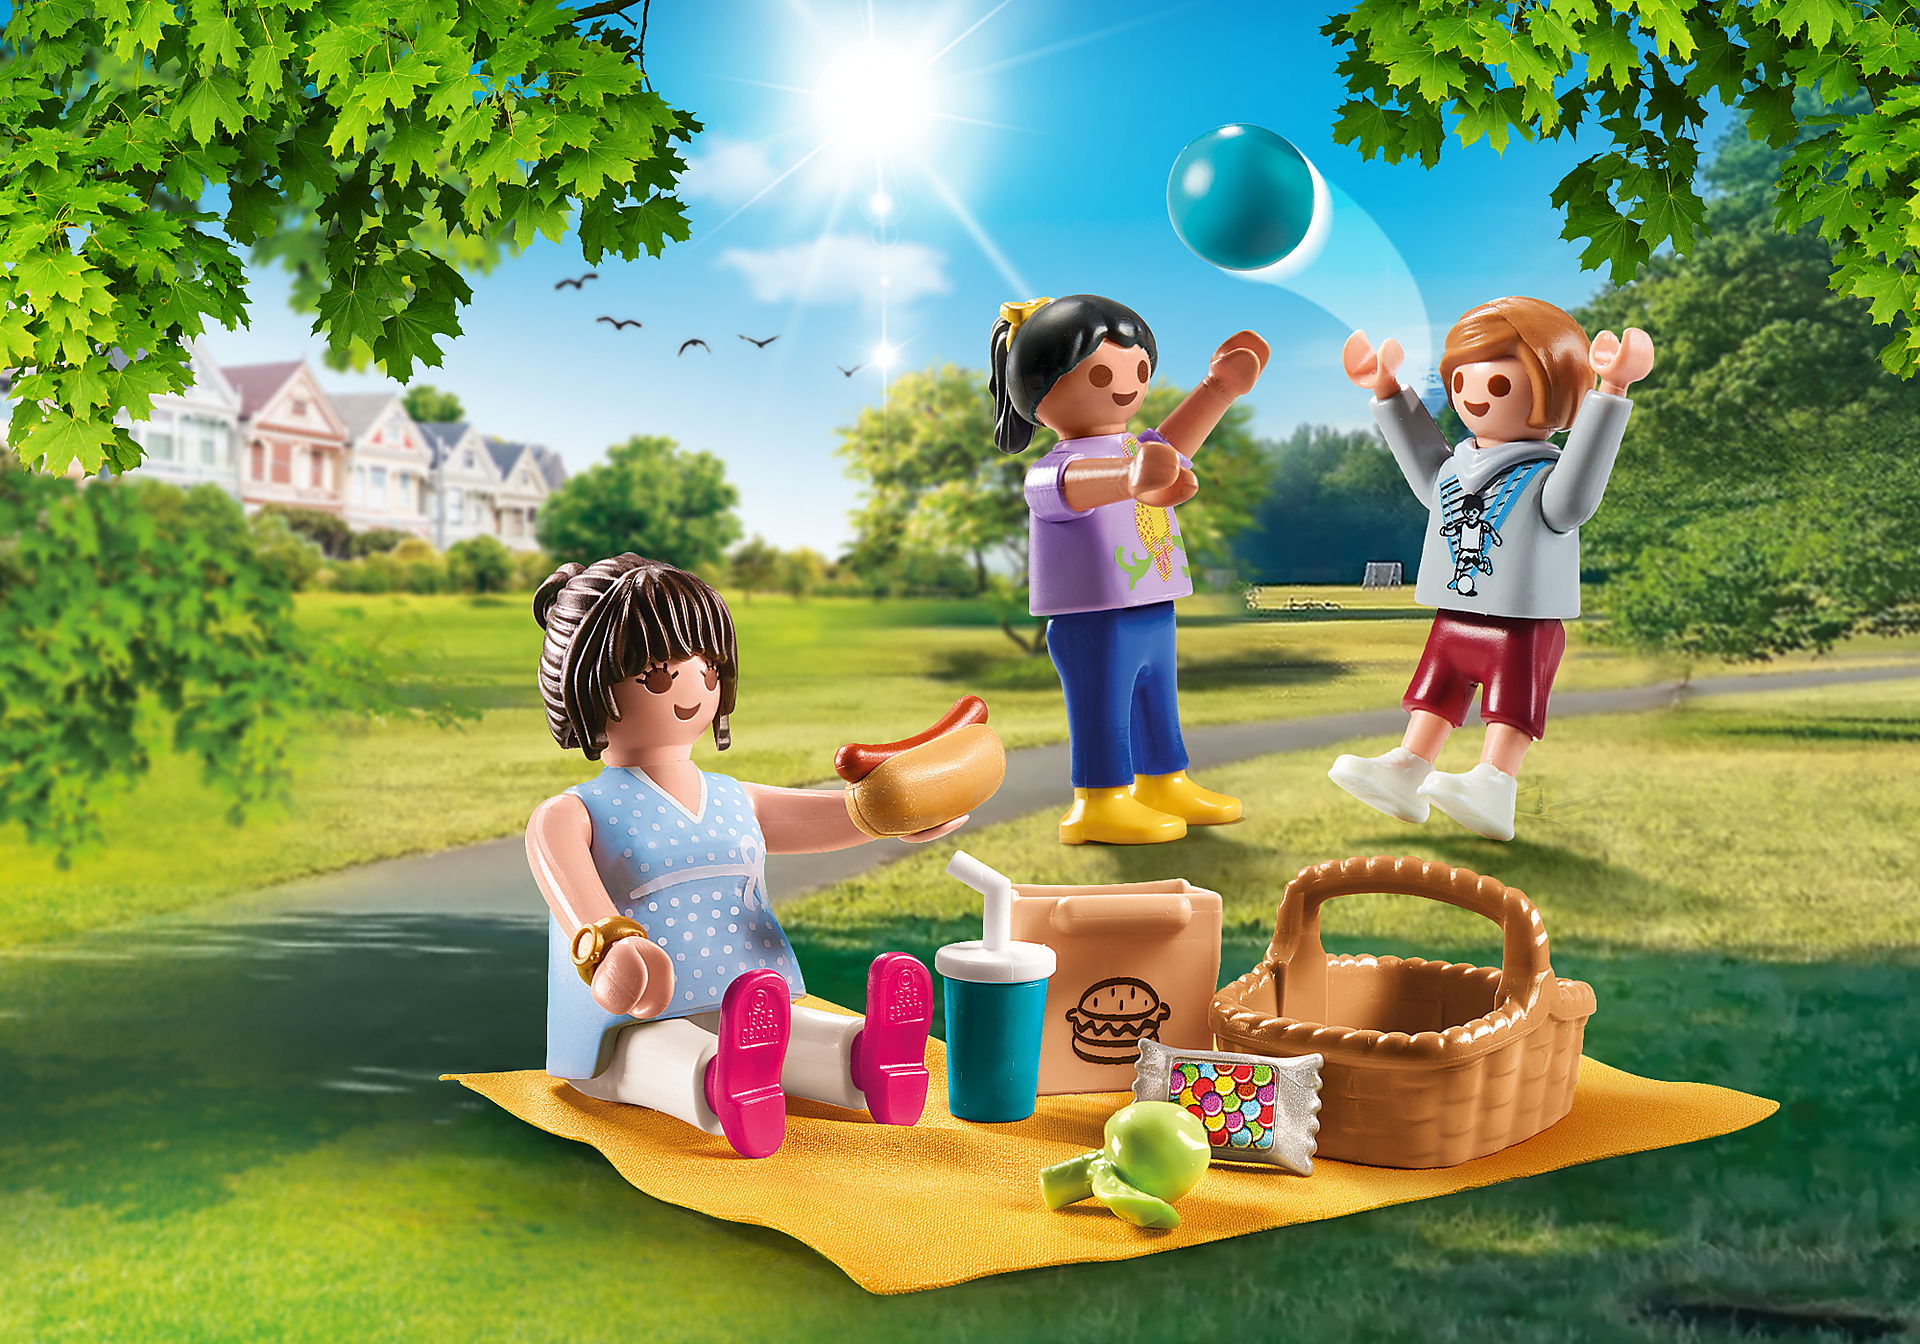 Inspired: International Picnic Day - Le Chateau blog